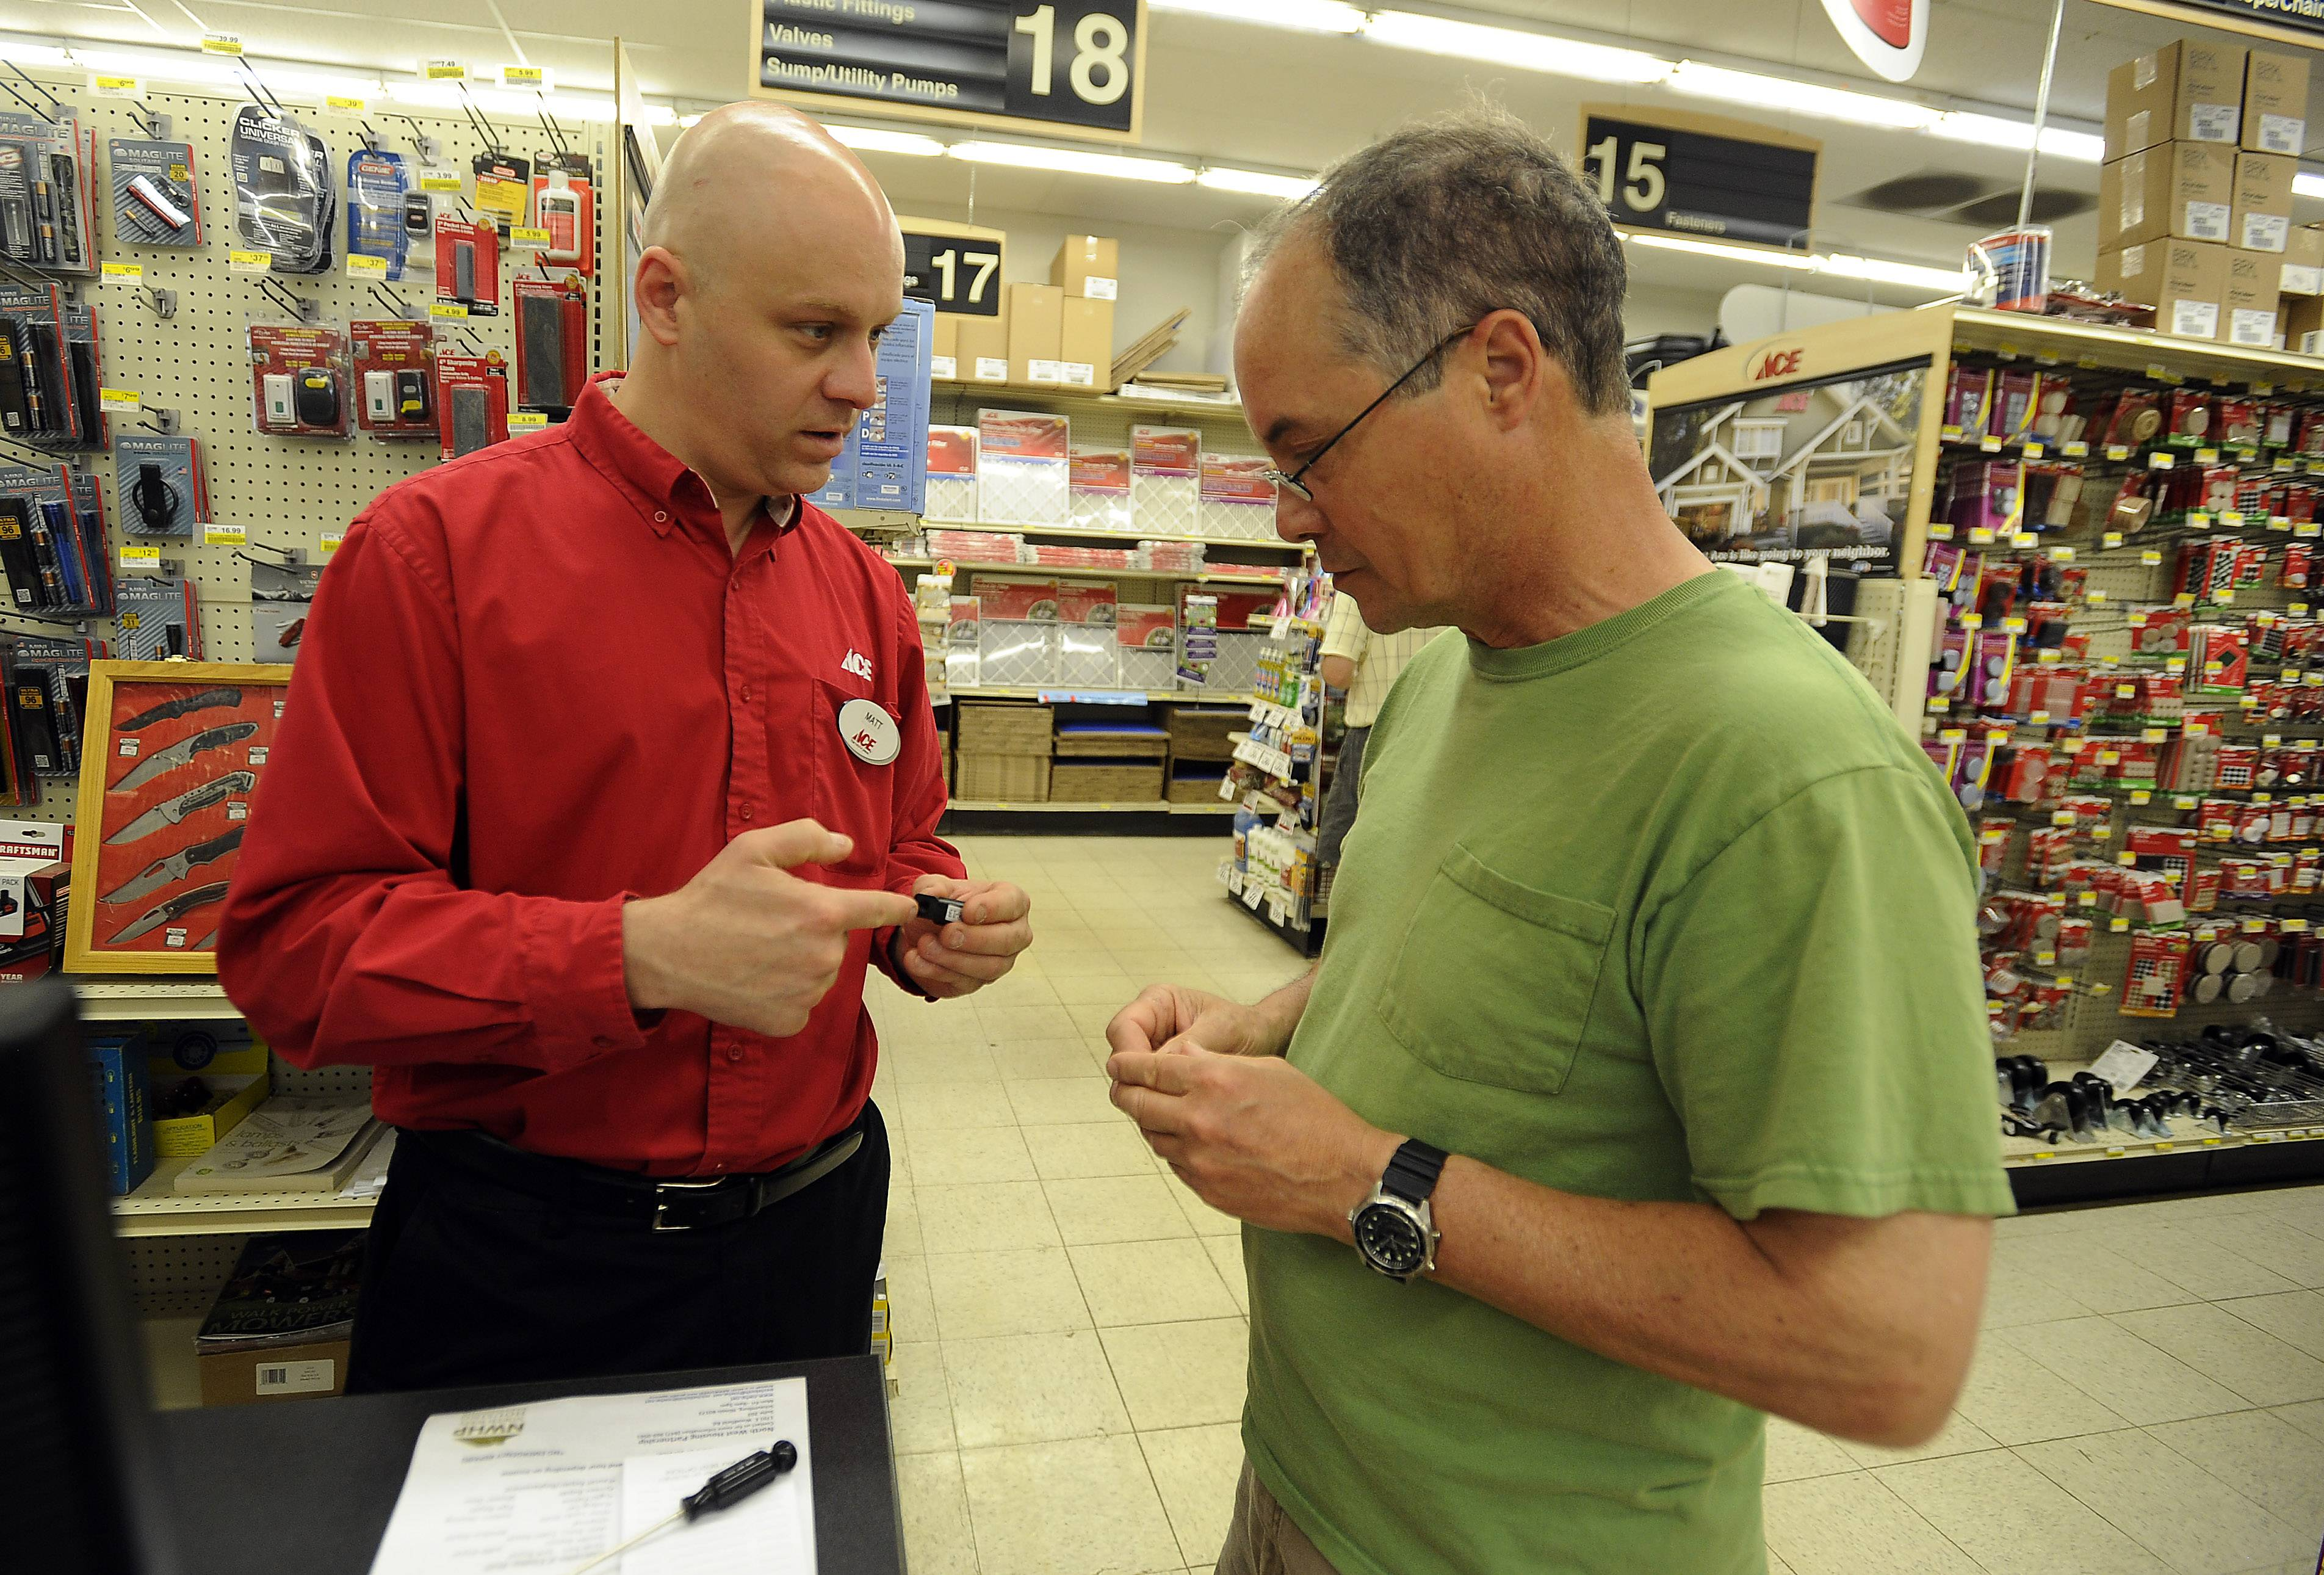 Sherwin Ace Hardware owner Matt Hanson in Arlington Heights helps out customer Steve Tiberi with an electrical problem. Hanson became the owner Jan. 1, taking over from Bob Ward.